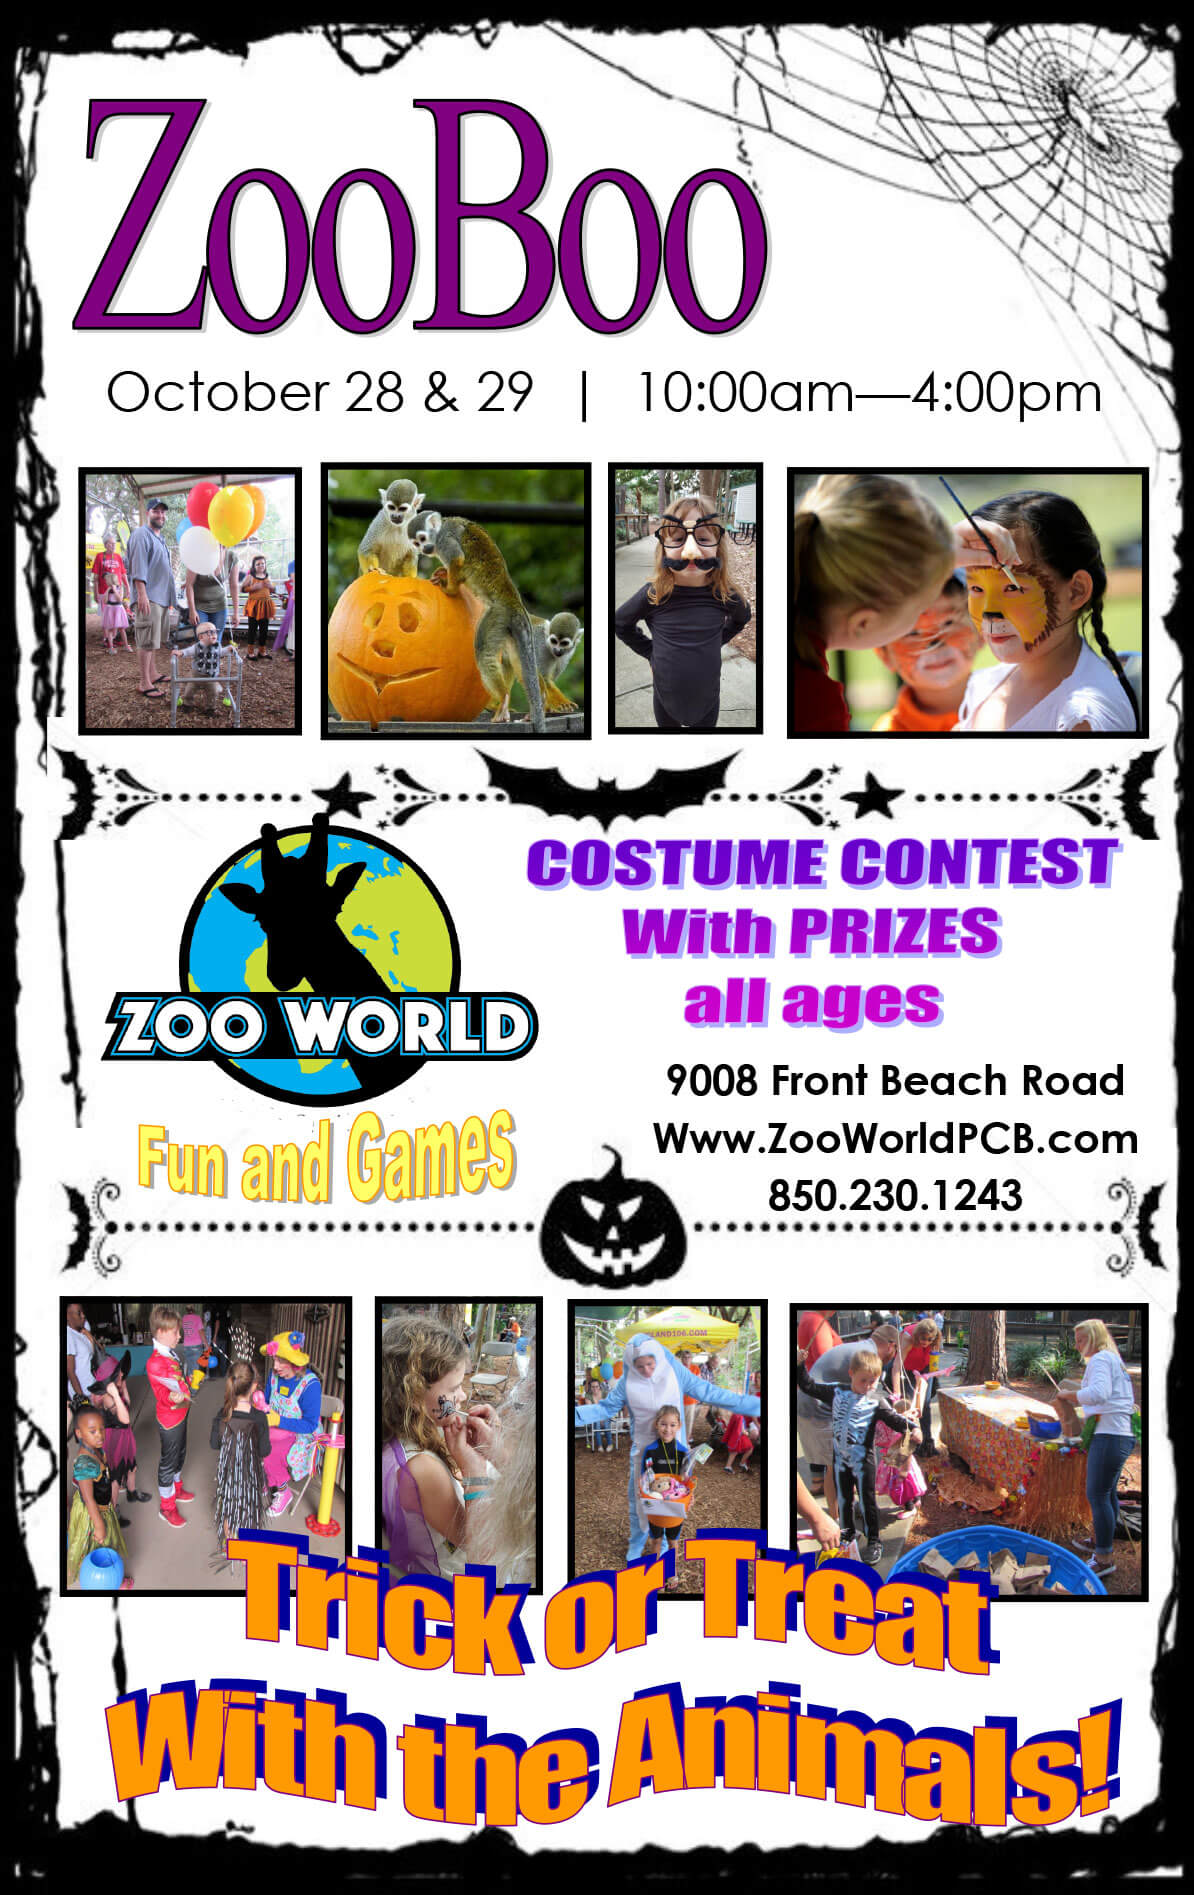 Zoo Boo - Trick or Treat with the Animals at Zoo World Panama City Beach